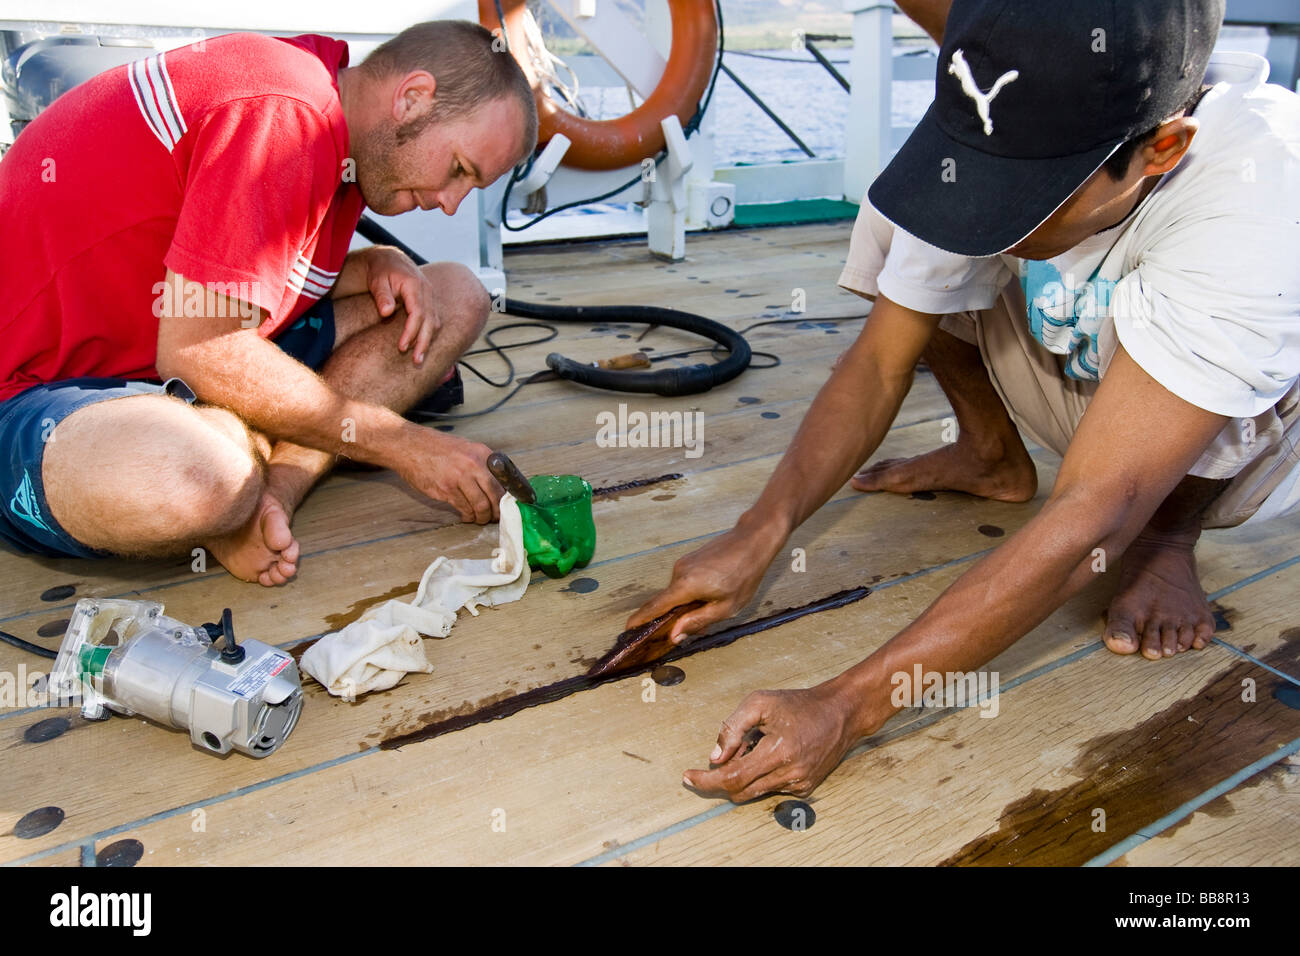 Sailors sealing planks on a ship, Indonesia - Stock Image